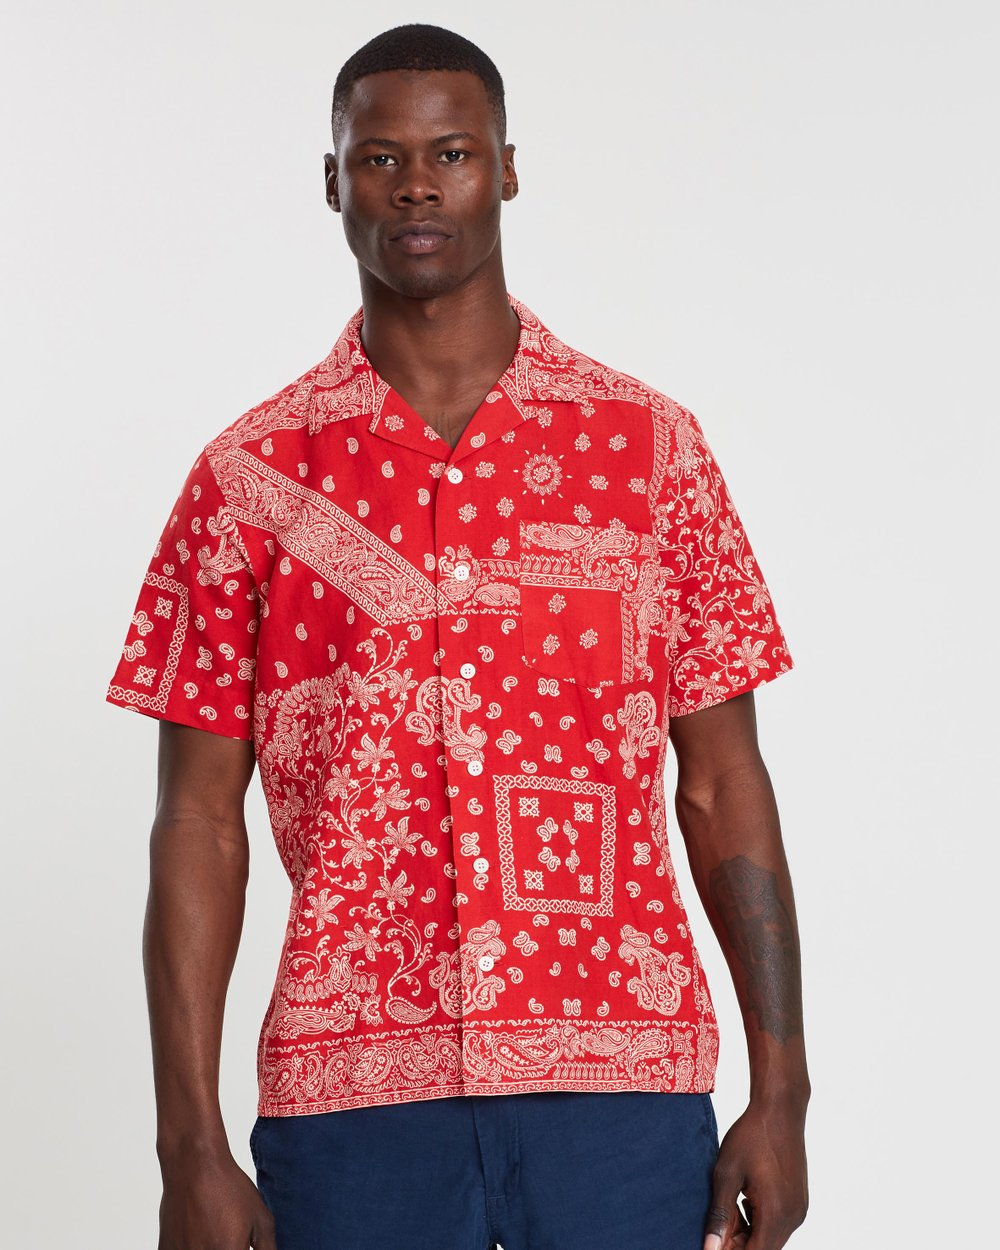 f8cfc141b Bandana Print Vacation Short Sleeve Shirt by Polo Ralph Lauren Online